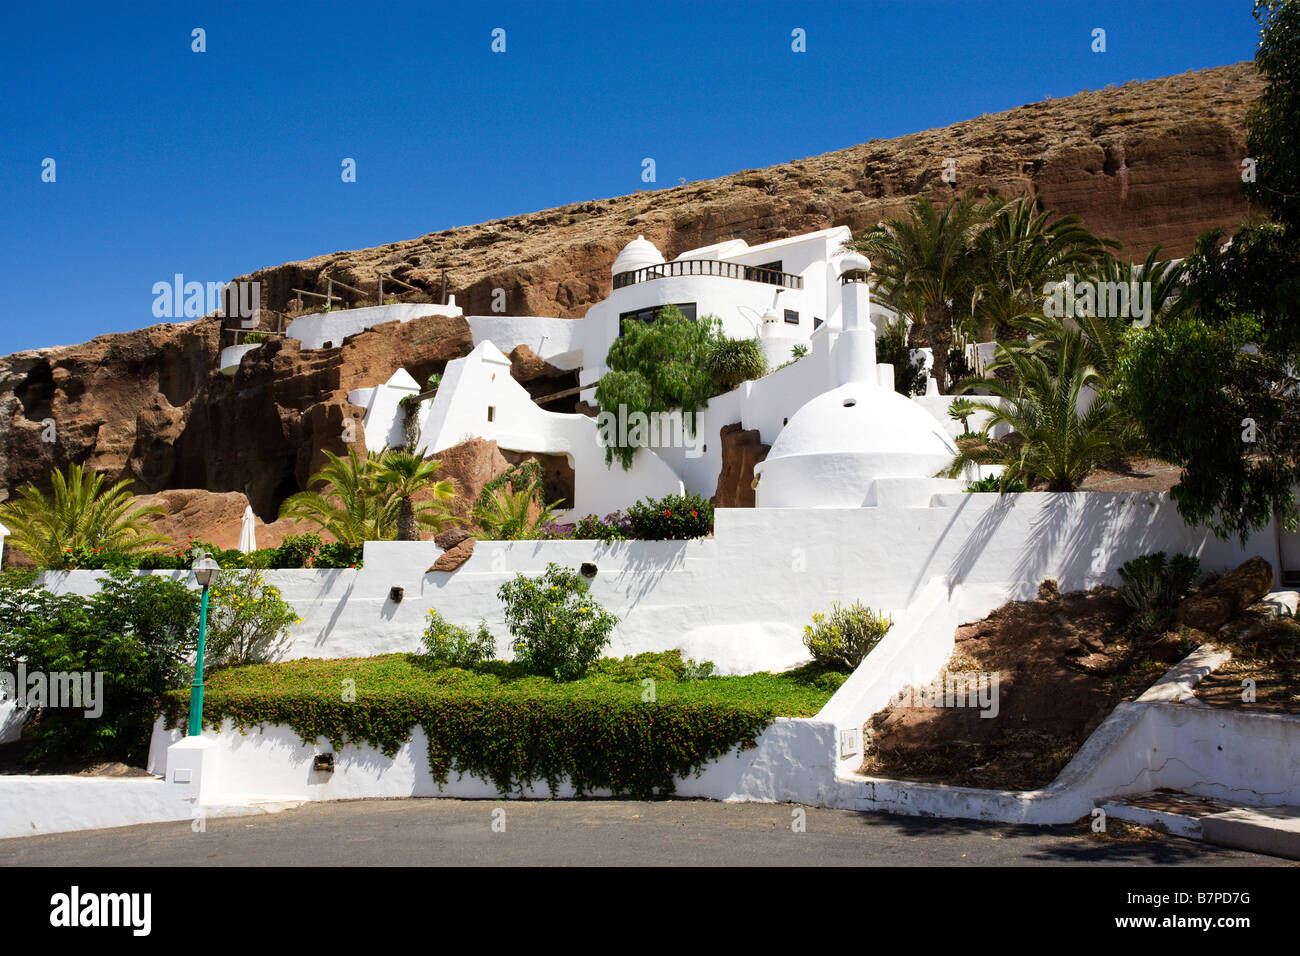 Lagomar, mansion formerly owned by Omar Sharif, Nazareth, Lanzarote, Canary Islands, Spain - Stock Image